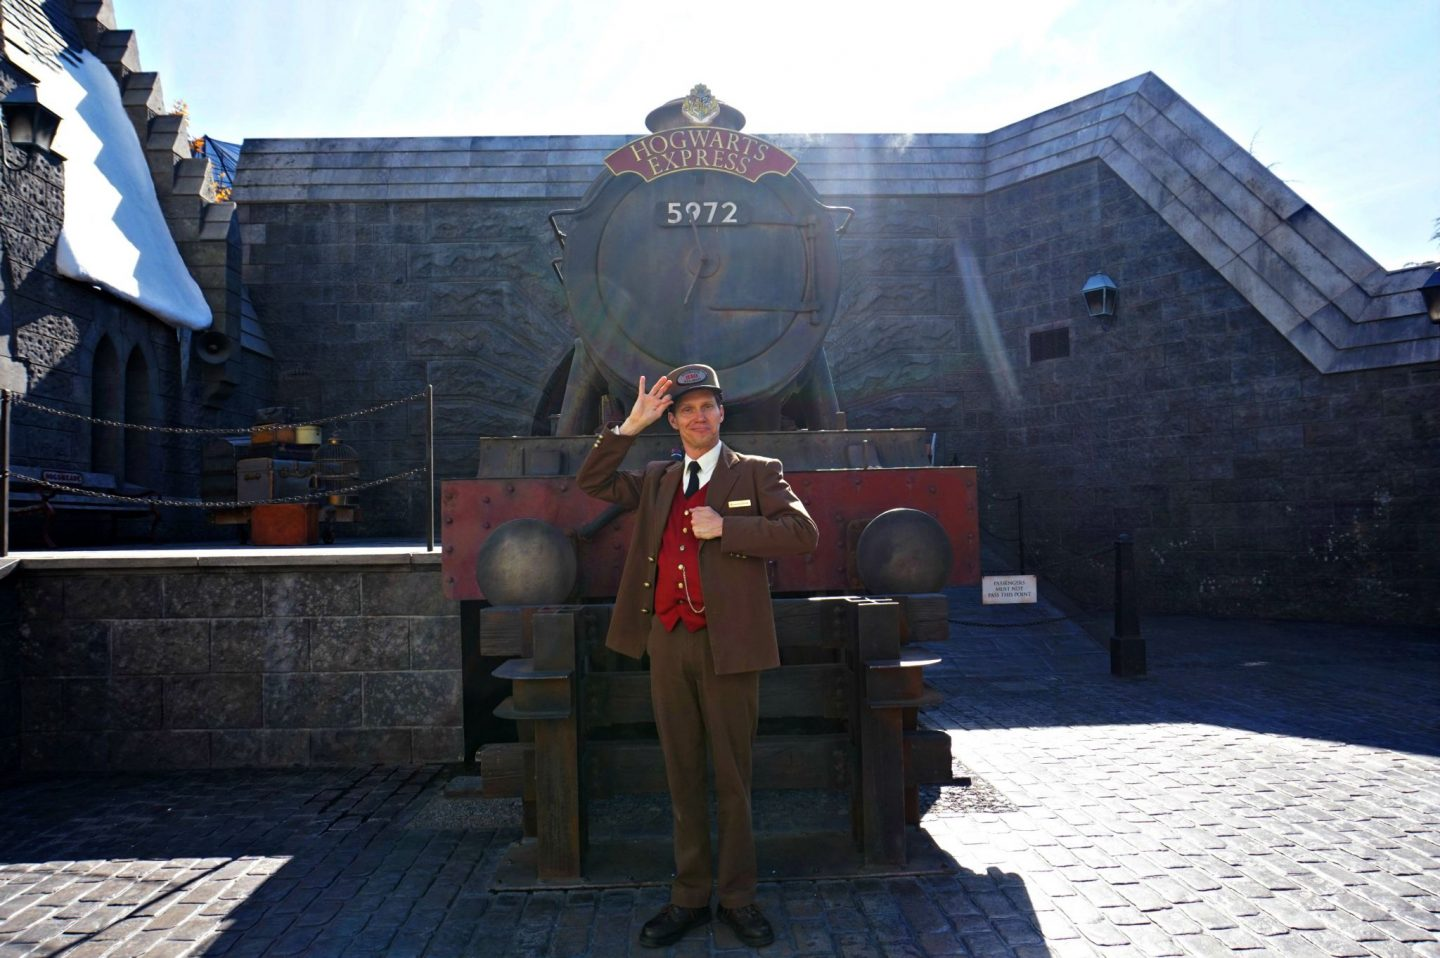 Harry Potter Universal Studios Hollywood